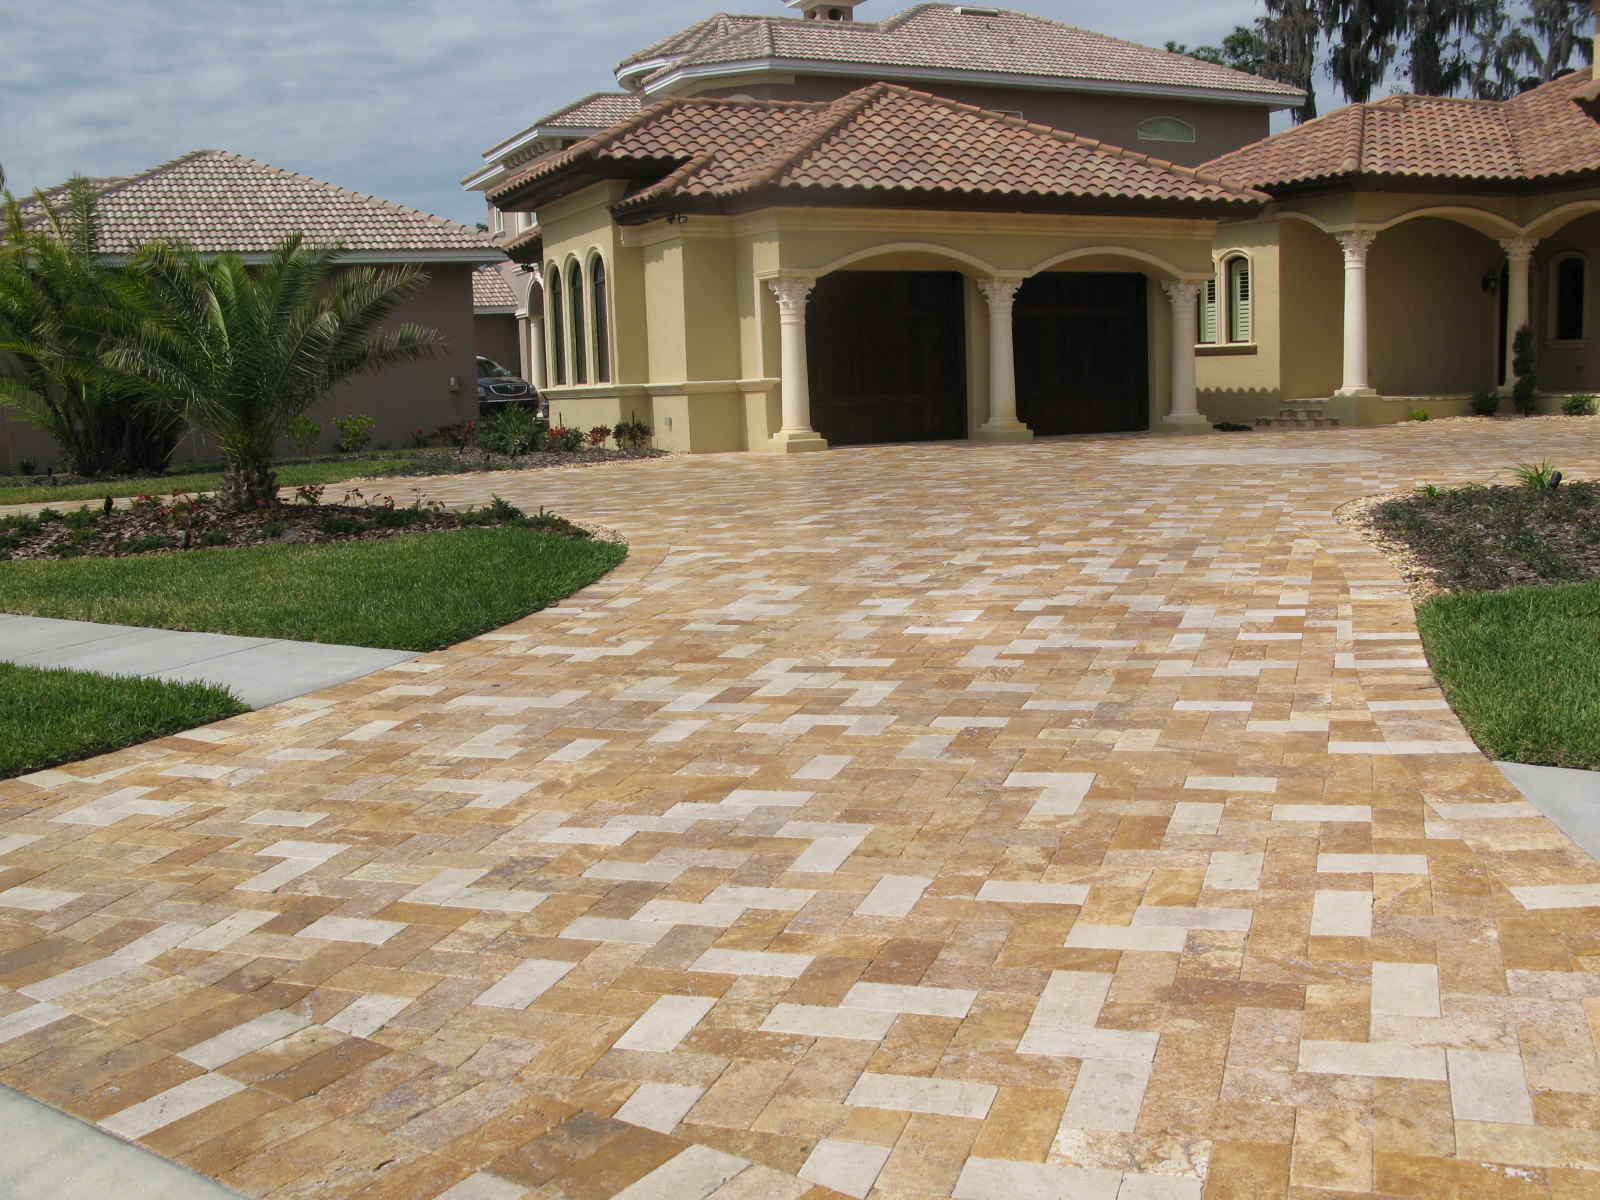 stamped concrete driveway patio design ideas everything you need to know - Driveway Design Ideas